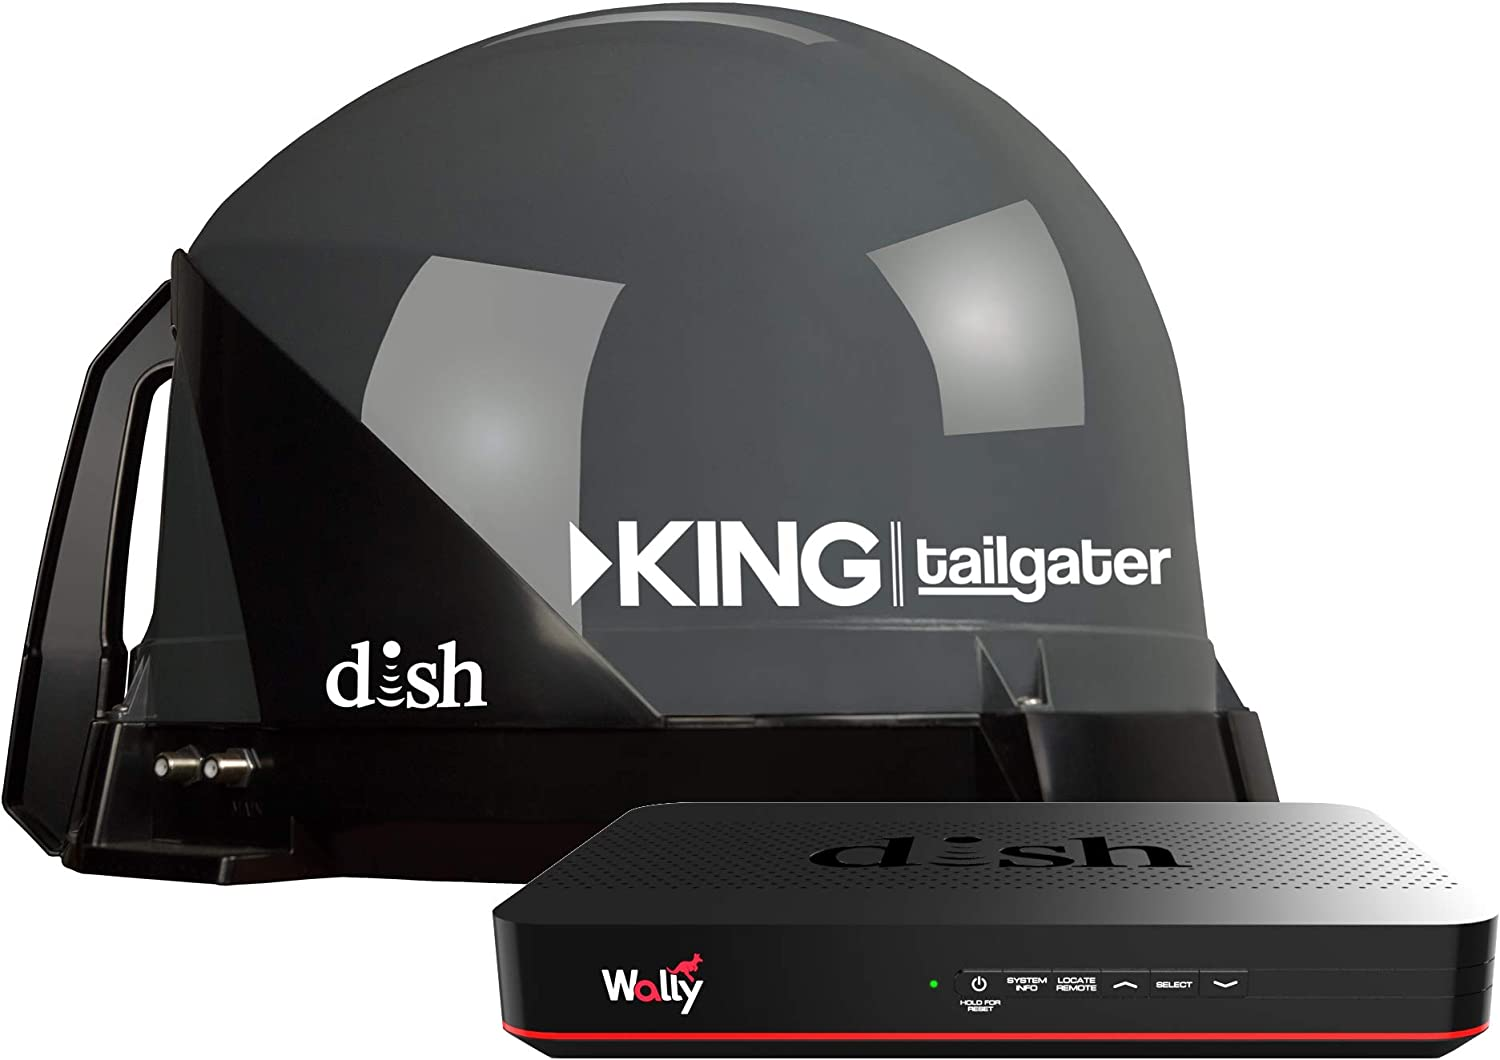 KING VQ4550 Tailgater Bundle — Portable Satellite TV Antenna and DISH Wally HD Receiver